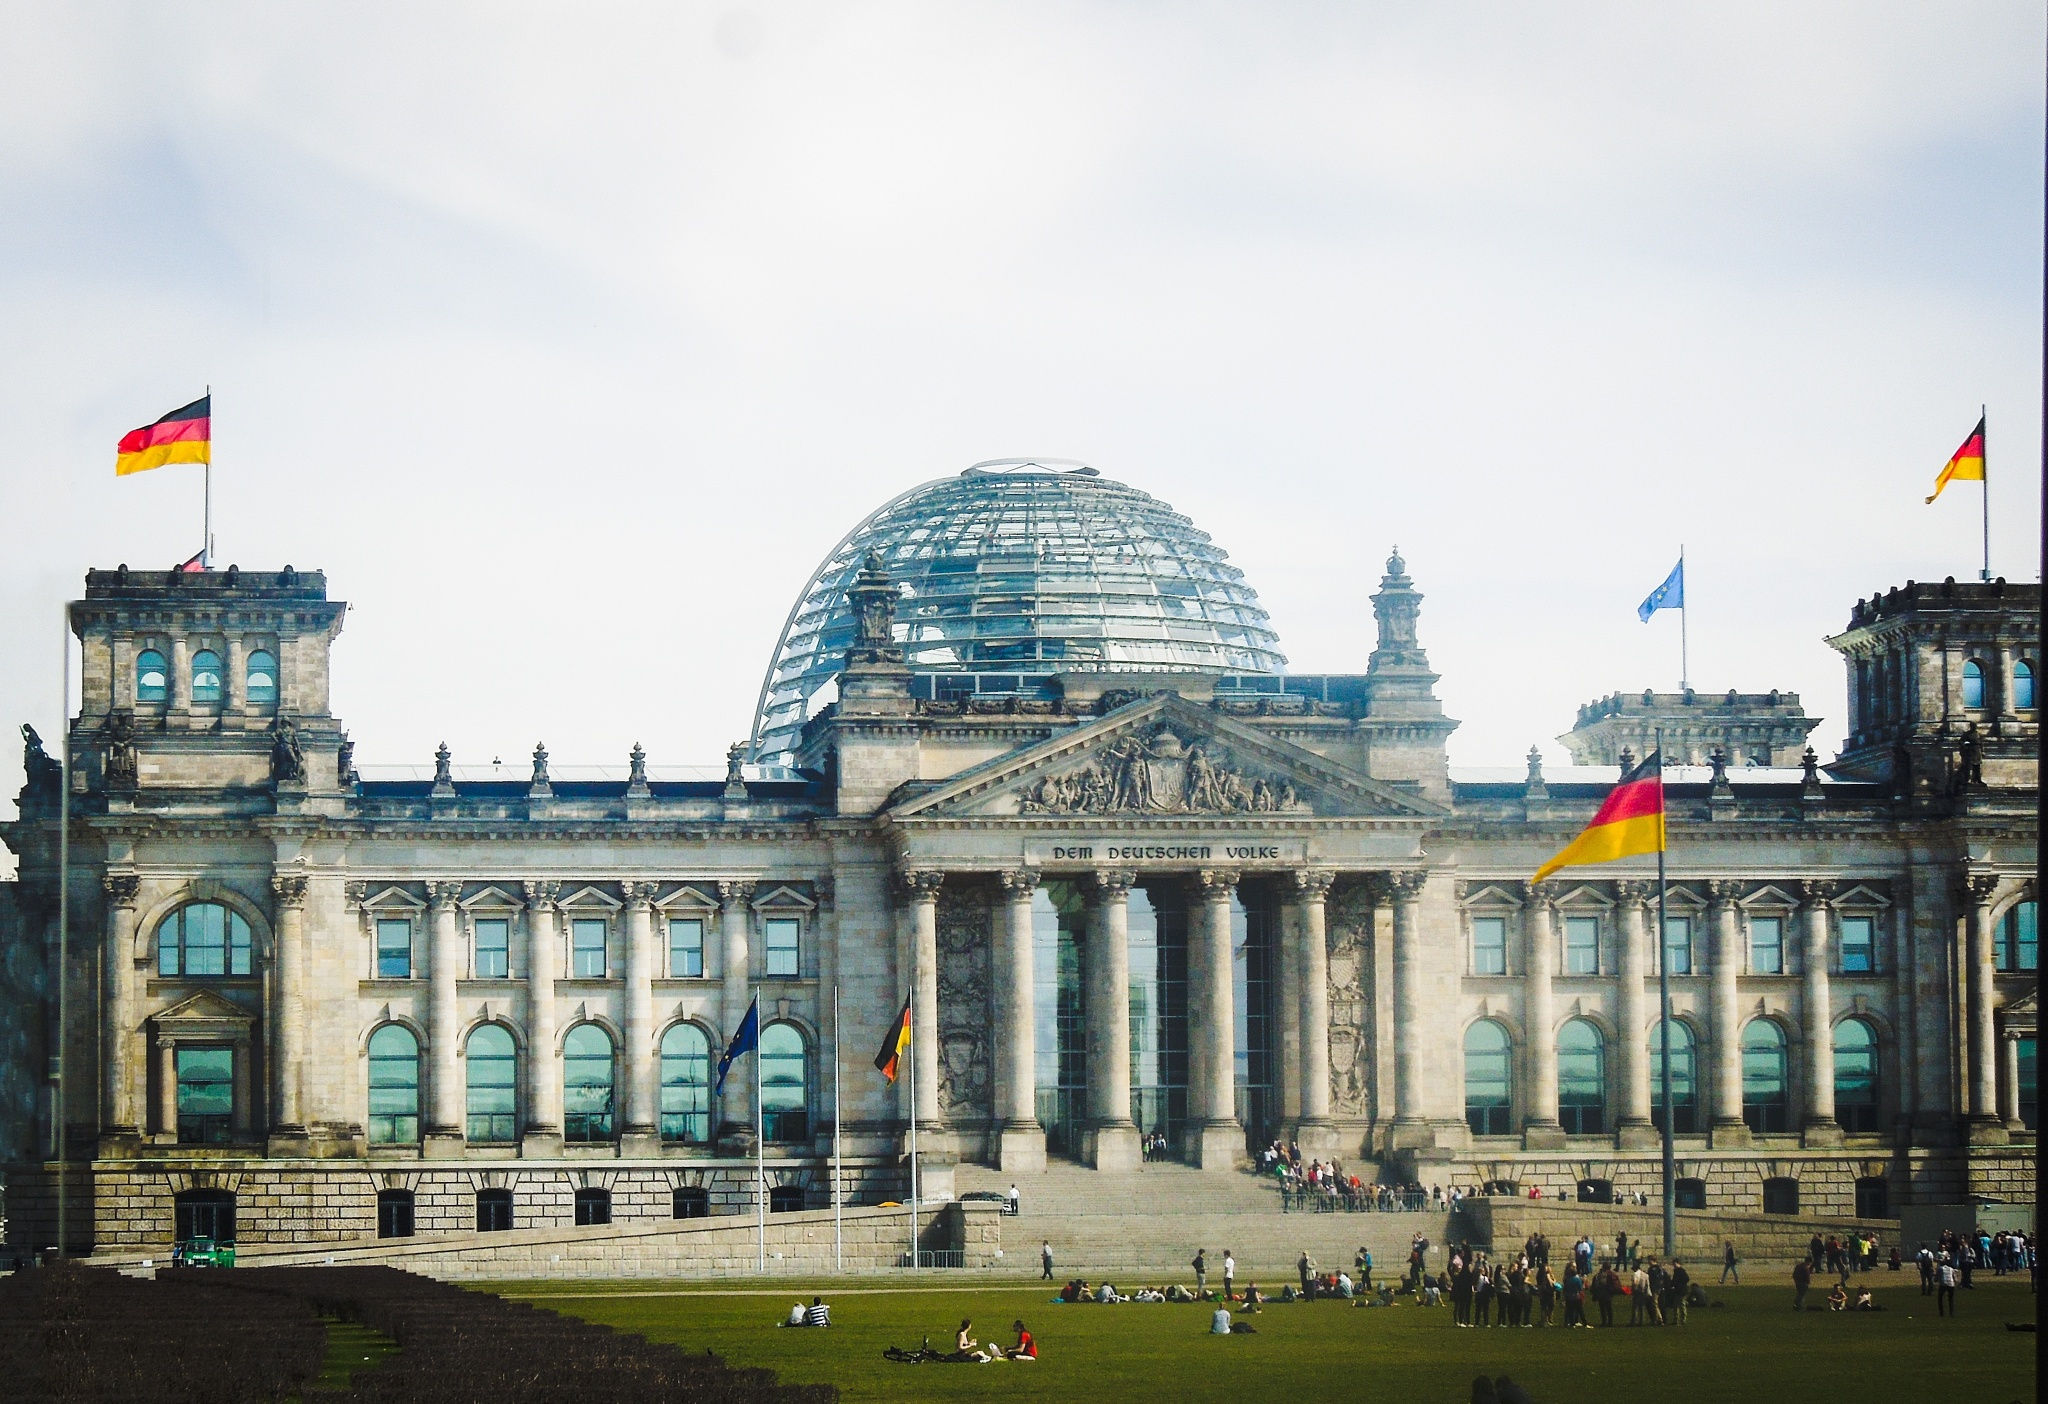 The Reichstag building. by CelyTessy